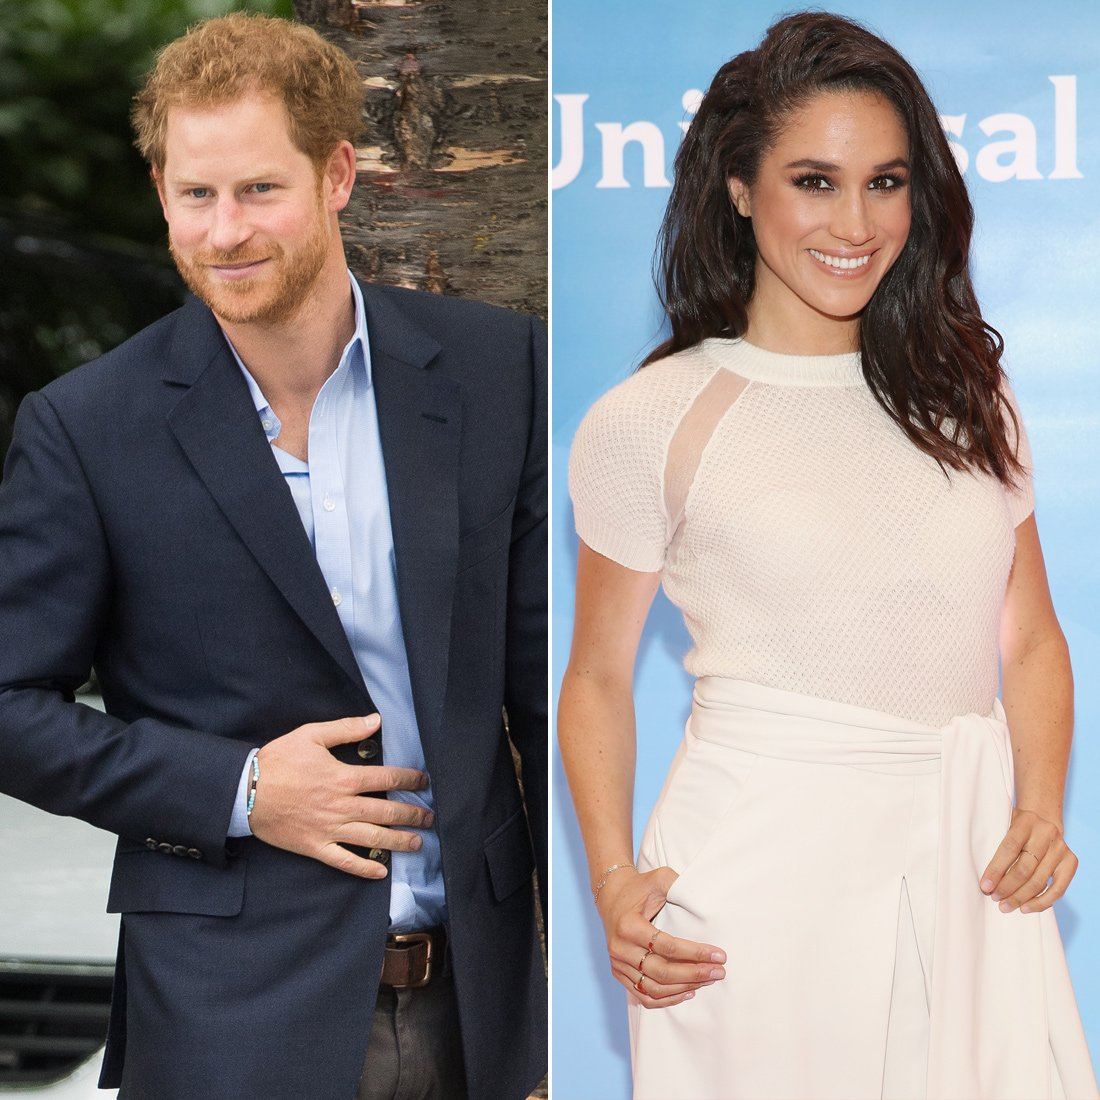 Meghan Markle Biography And Profile